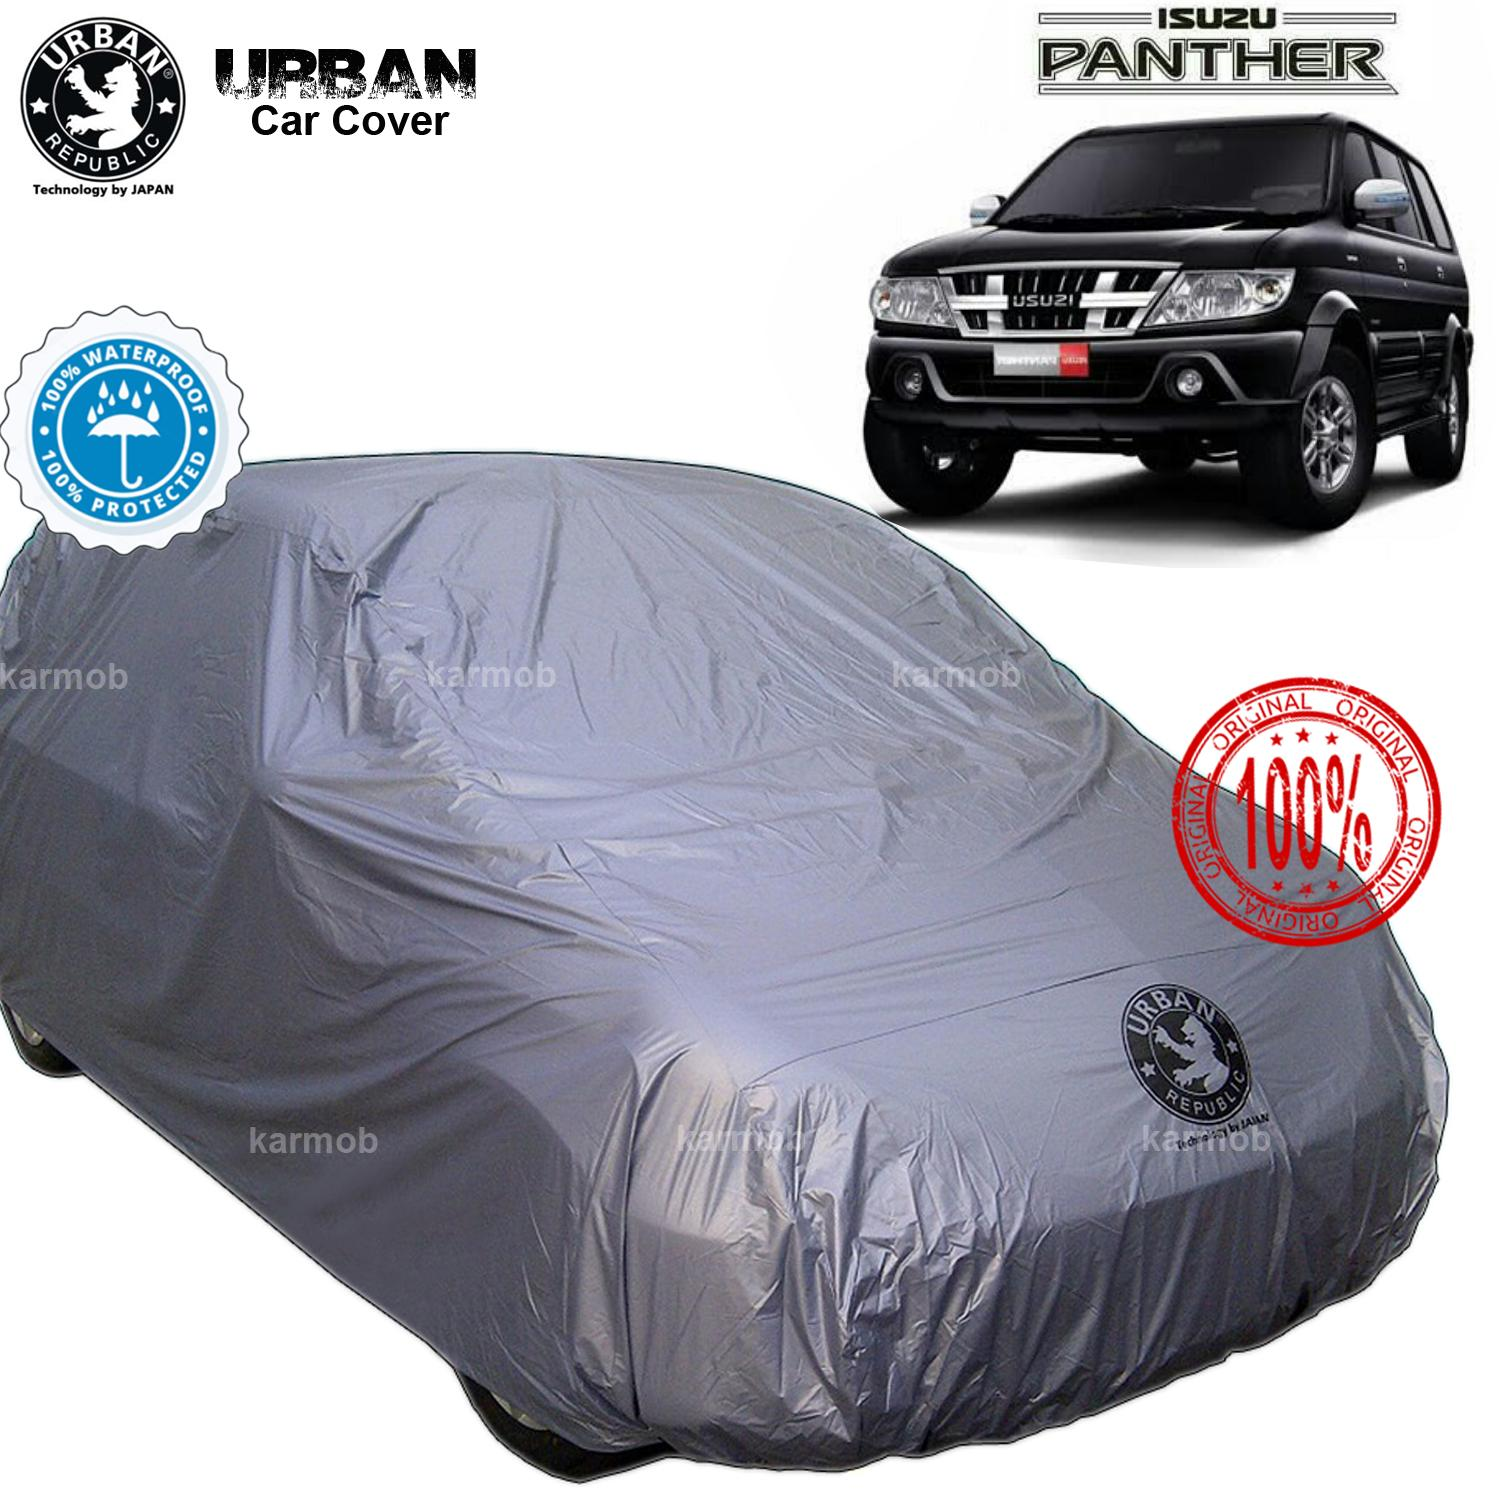 Urban / Body Cover Phanter / Selimut Mobil Isuzu Phanter / Tutup Mobil Isuzu Phanter / Car Cover Isuzu Phanter / Sarung Mobil Isuzu Phanter